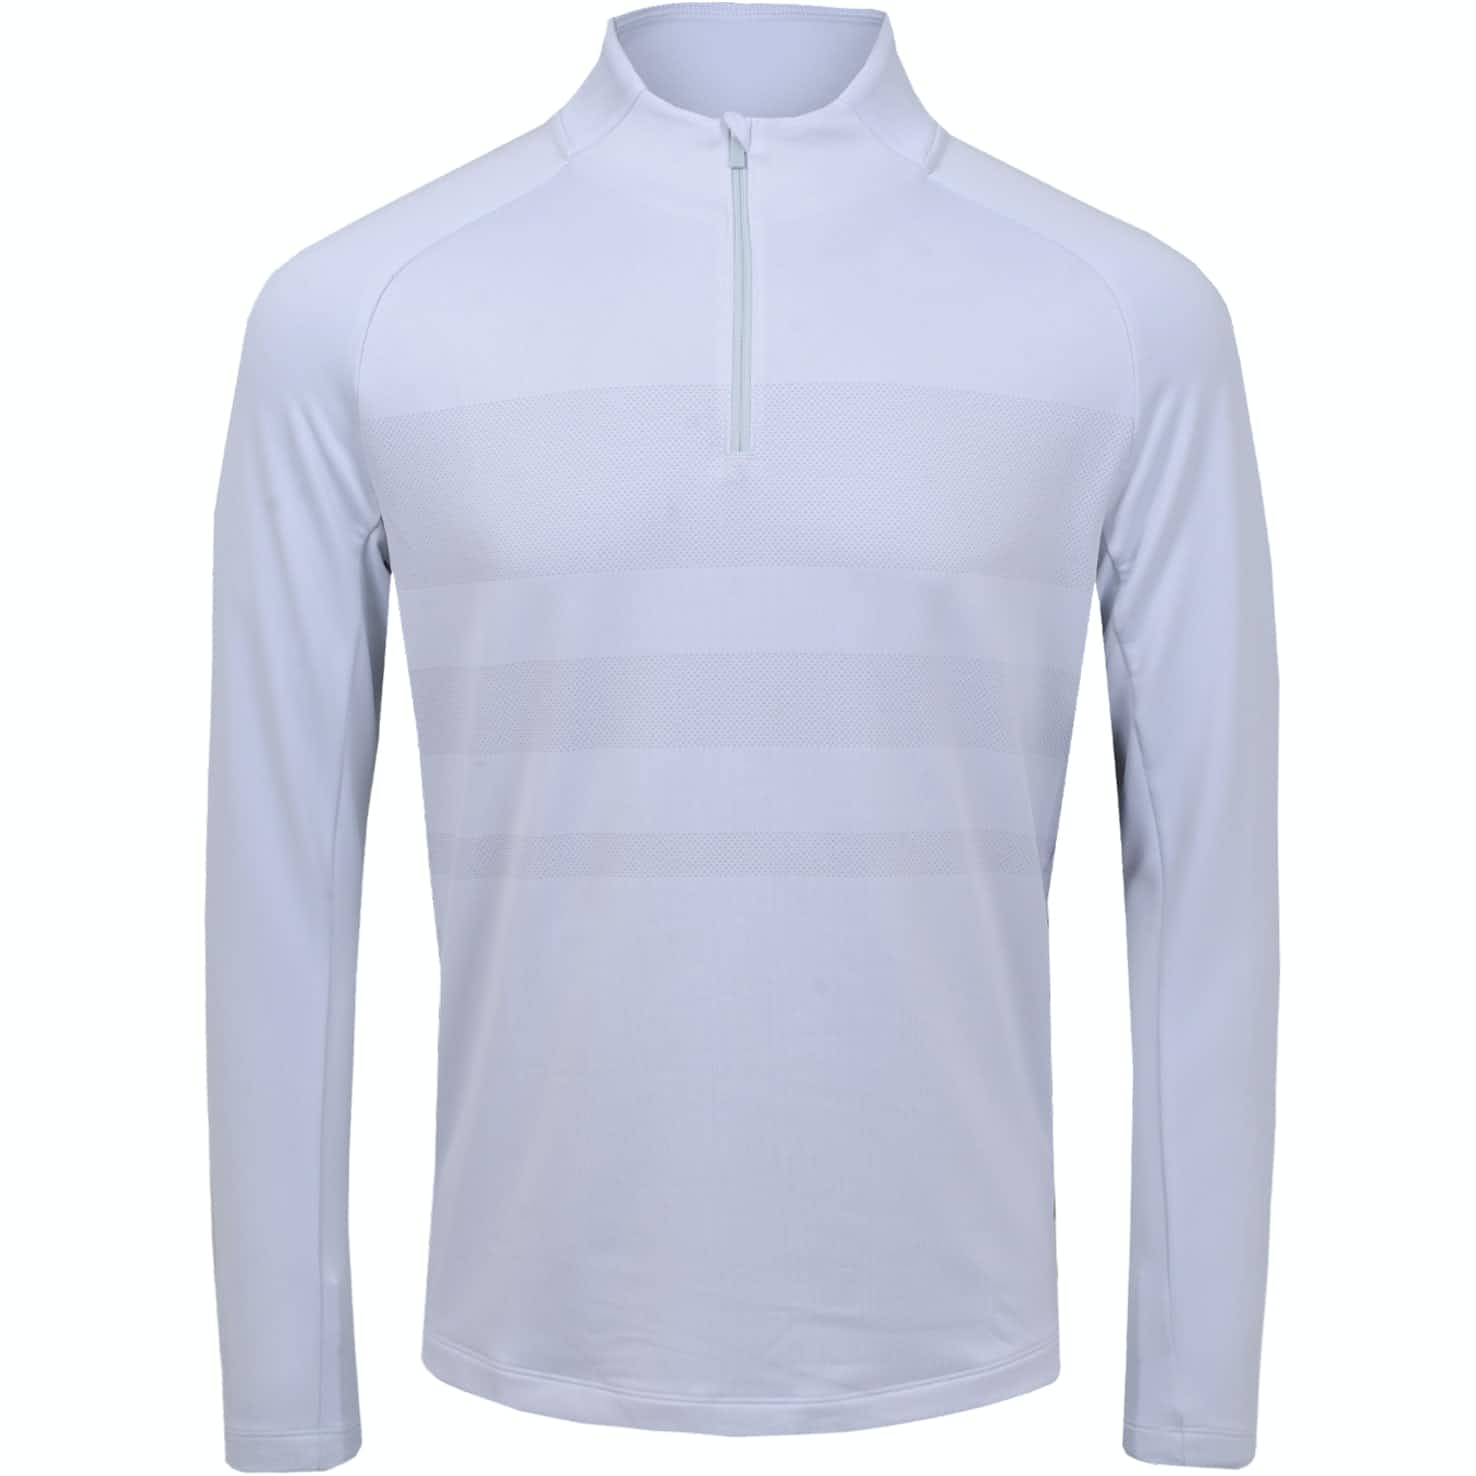 Dry Half Zip Statement Top White/Sky Grey - SS20